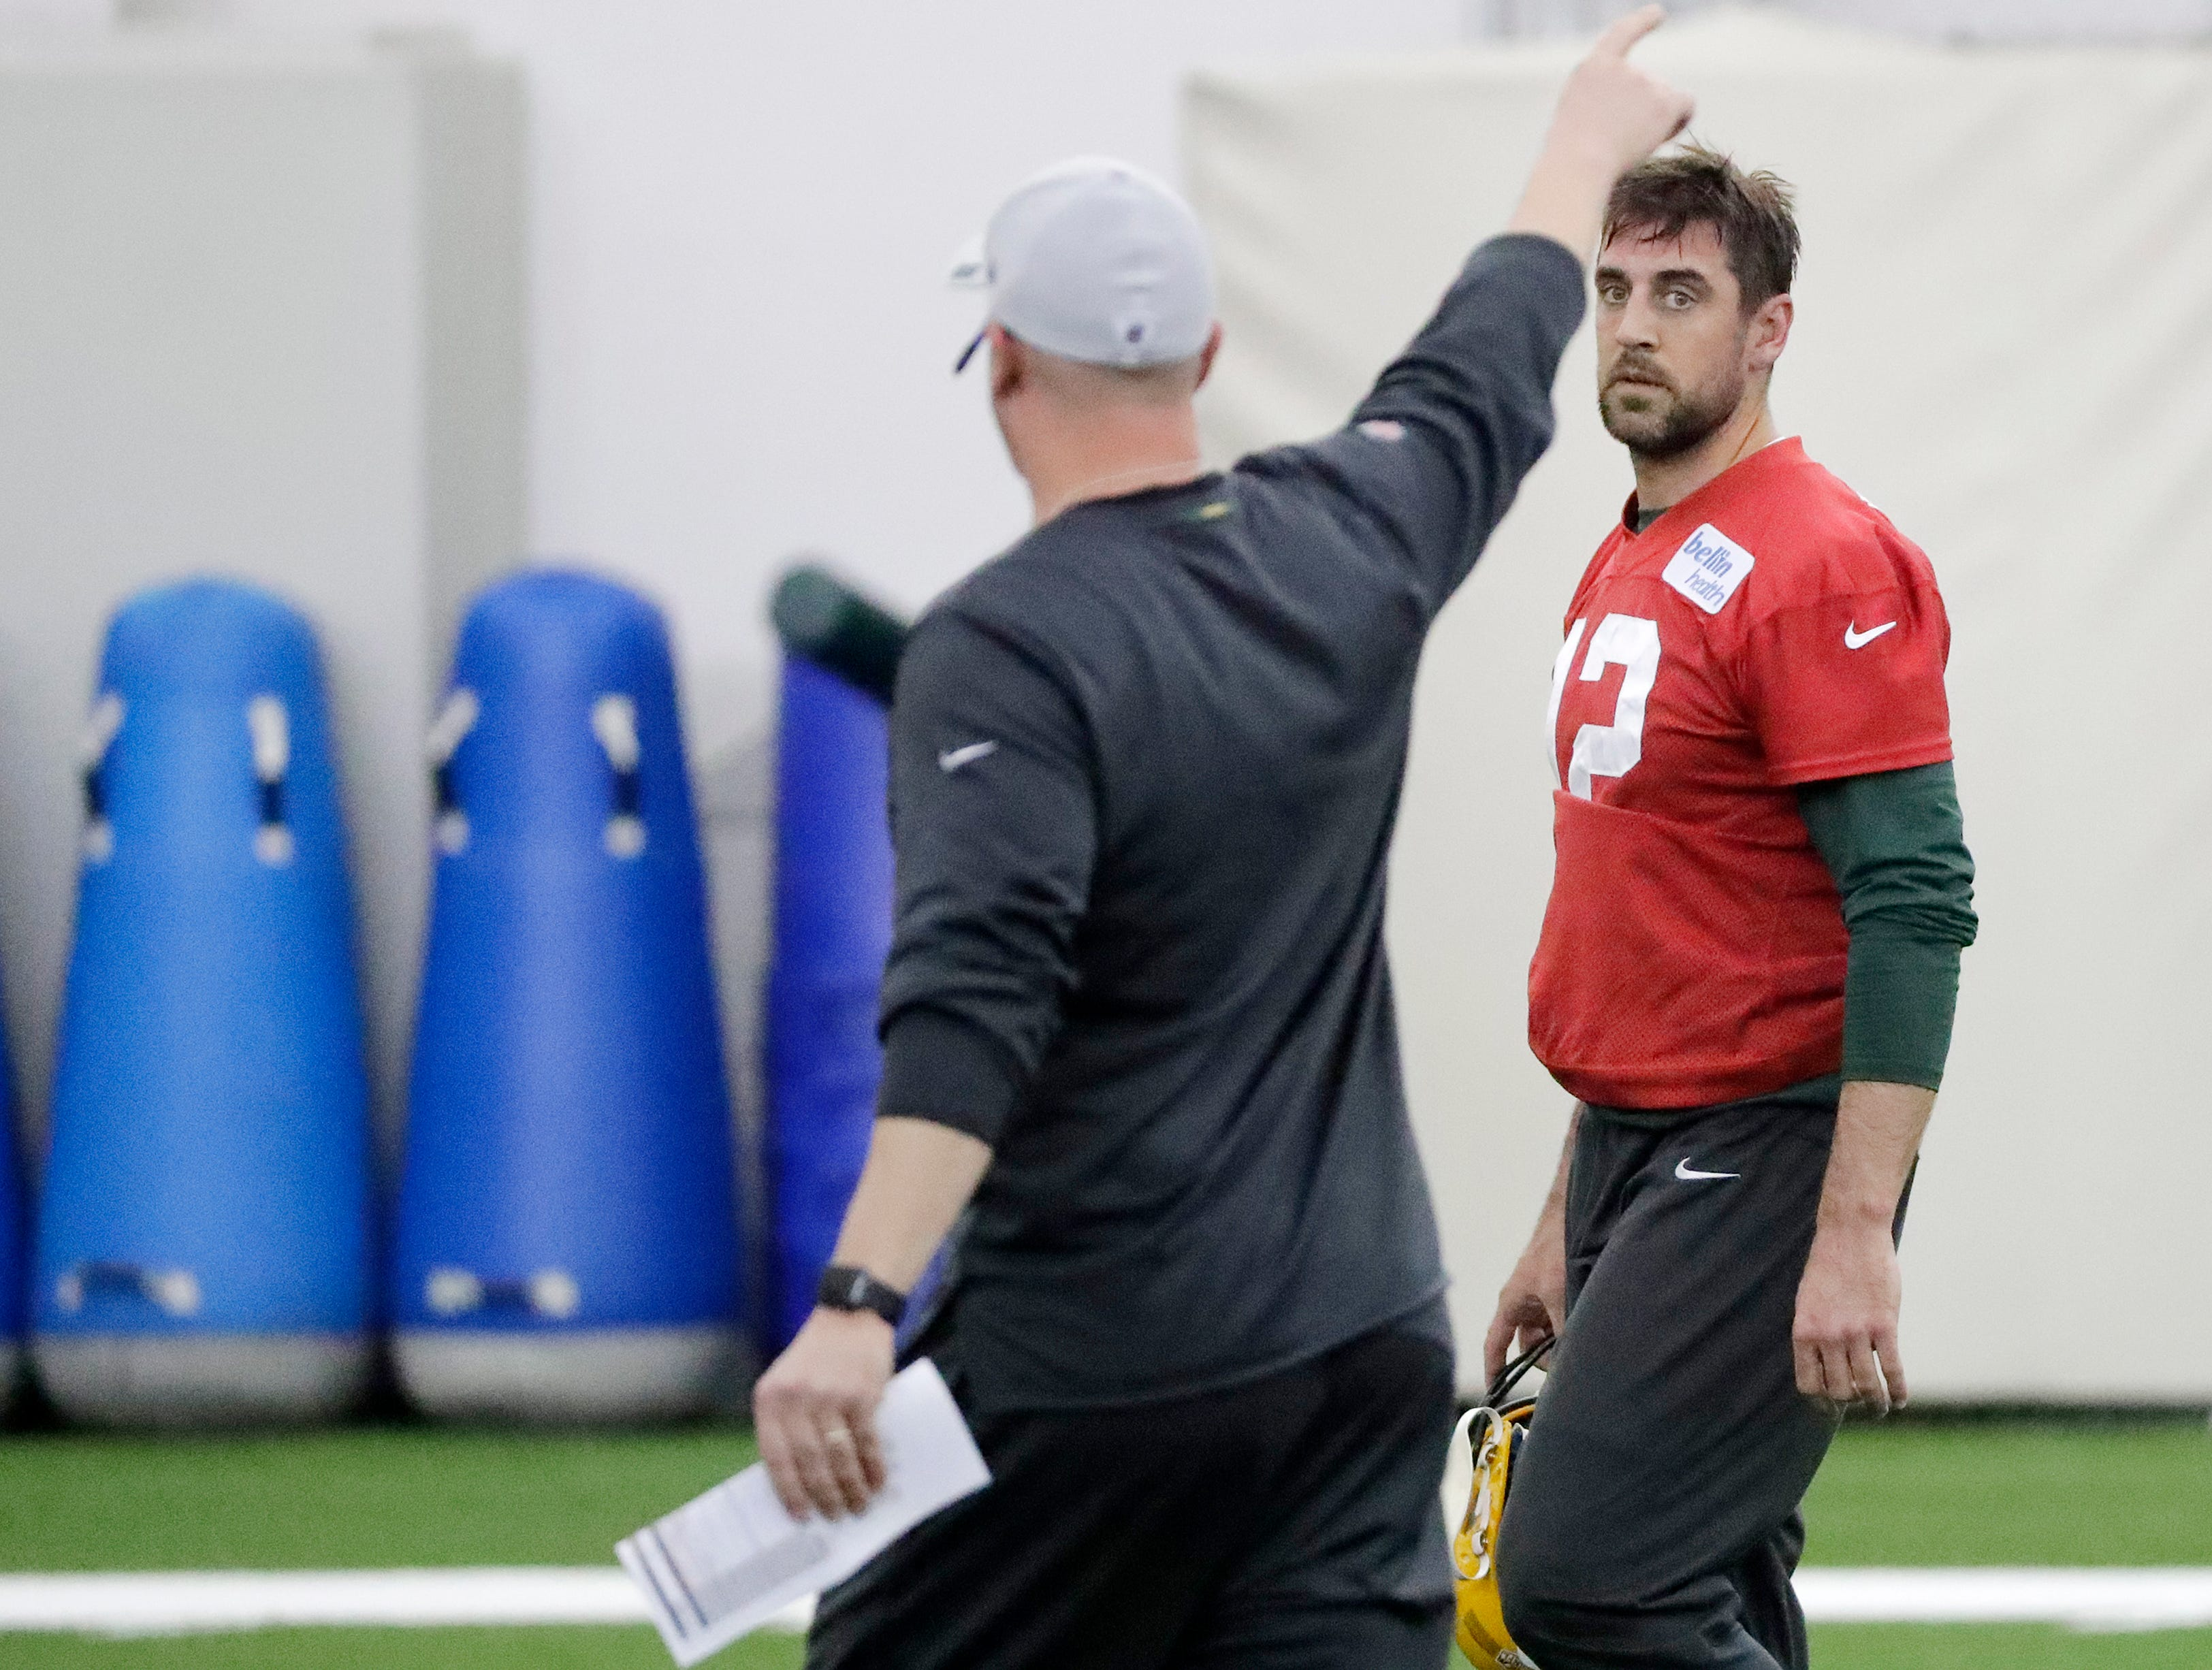 Green Bay Packers quarterback Aaron Rodgers (12) during a team practice at the Don Hutson Center on Wednesday, April 24, 2019 in Ashwaubenon, Wis.